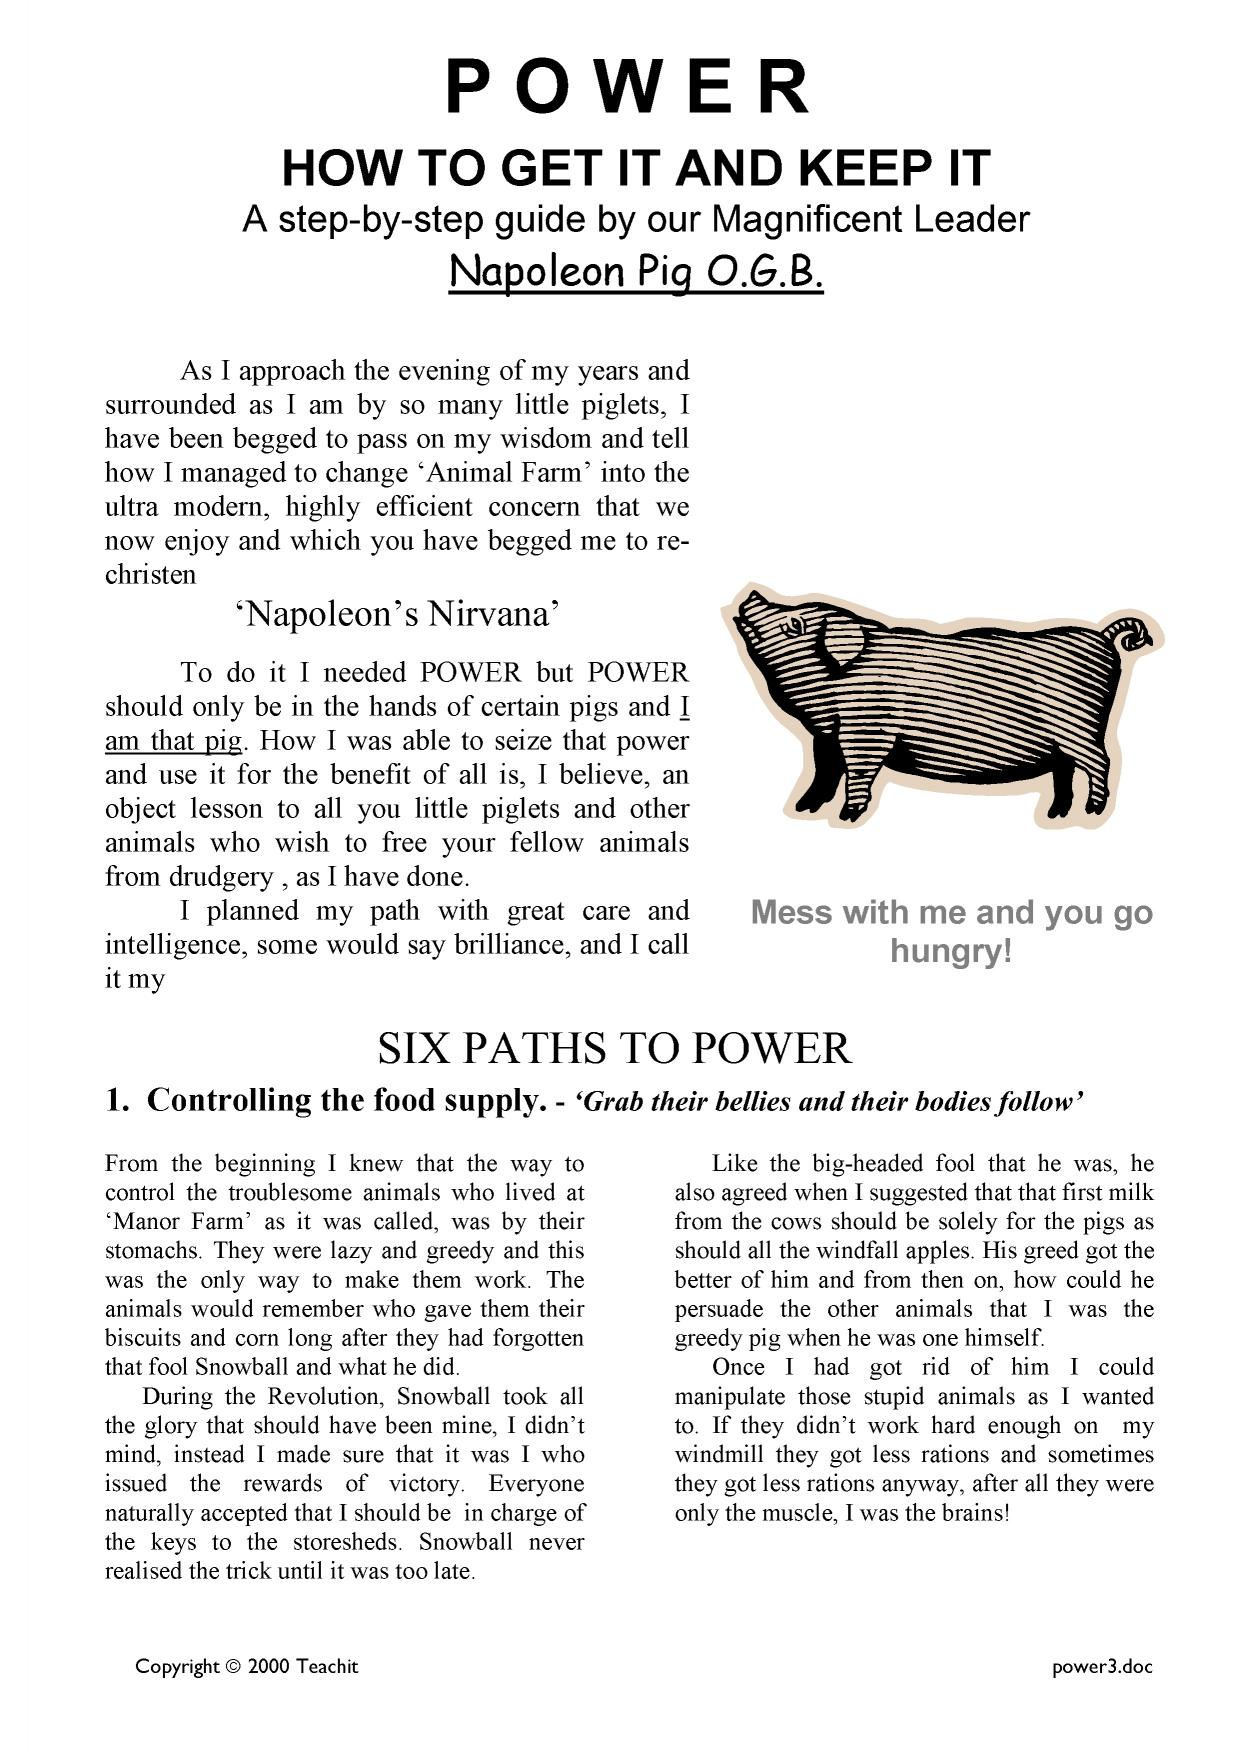 Power Pamphlet